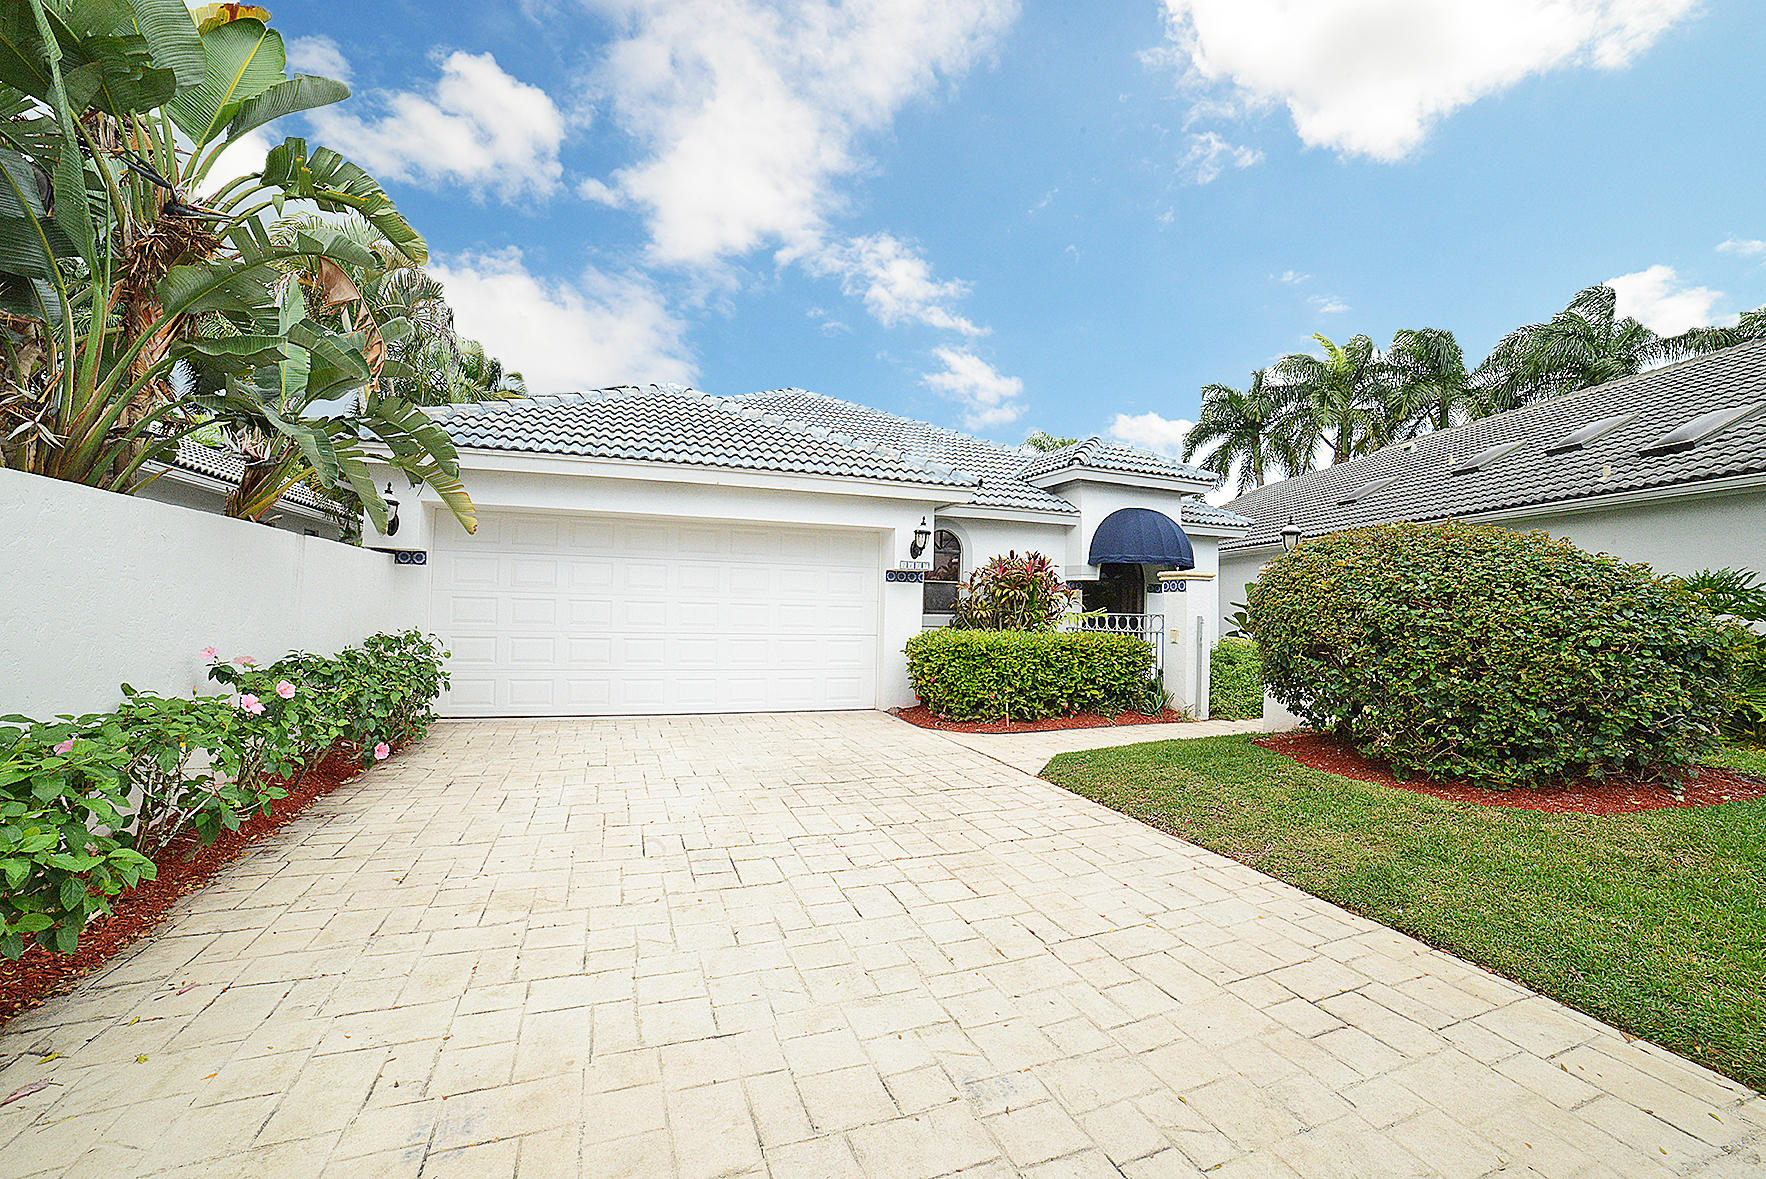 2147 60th Circle, Boca Raton, Florida 33496, 3 Bedrooms Bedrooms, ,4 BathroomsBathrooms,A,Single family,60th,RX-10330578